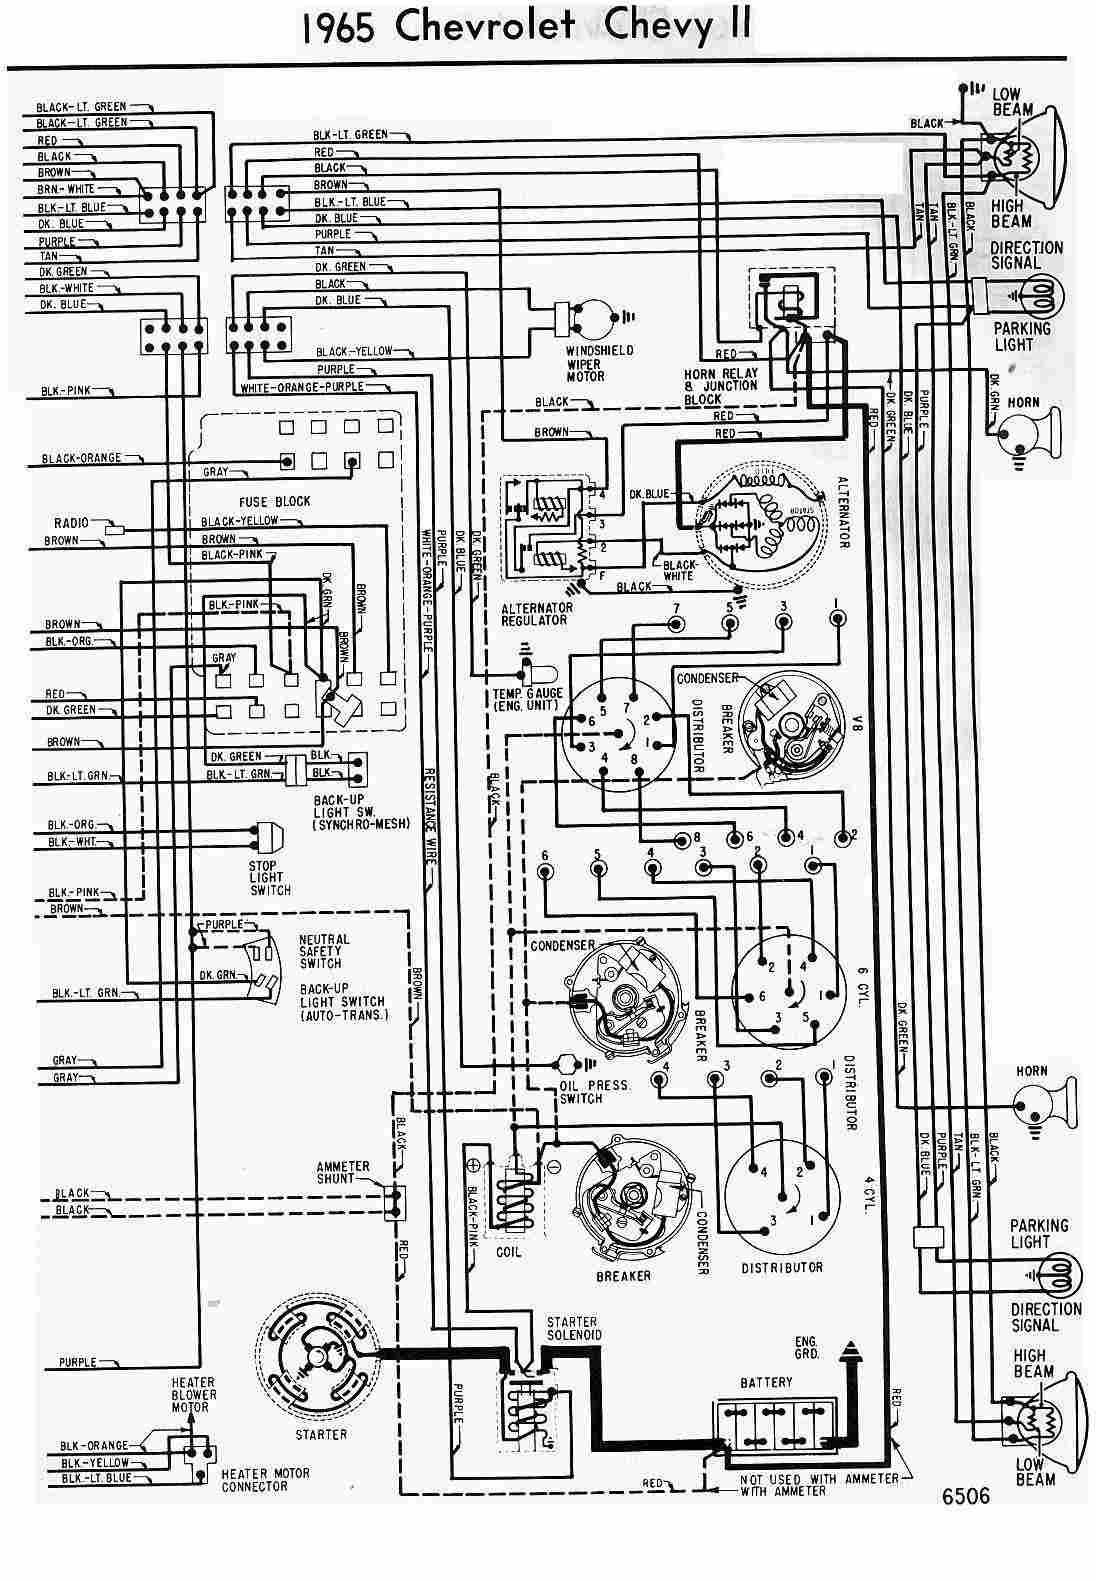 Chevrolet Car Manuals Wiring Diagrams Pdf Fault Codes 2003 Chevy S10 Pick Up Diagram Download